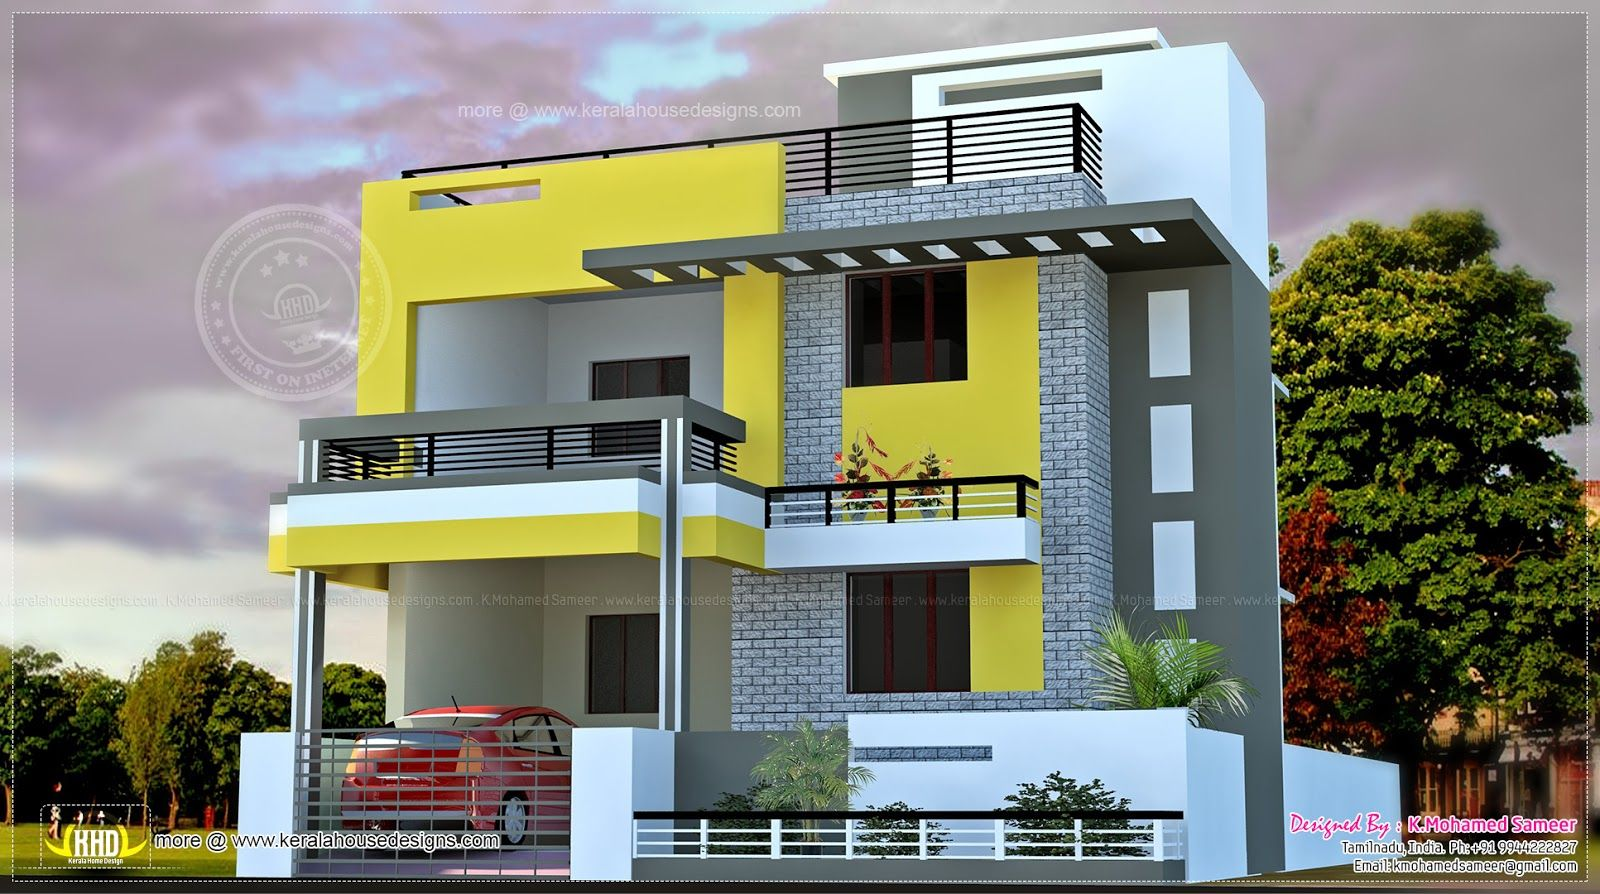 Elevations of residential buildings in indian photo for Best duplex house plans in india